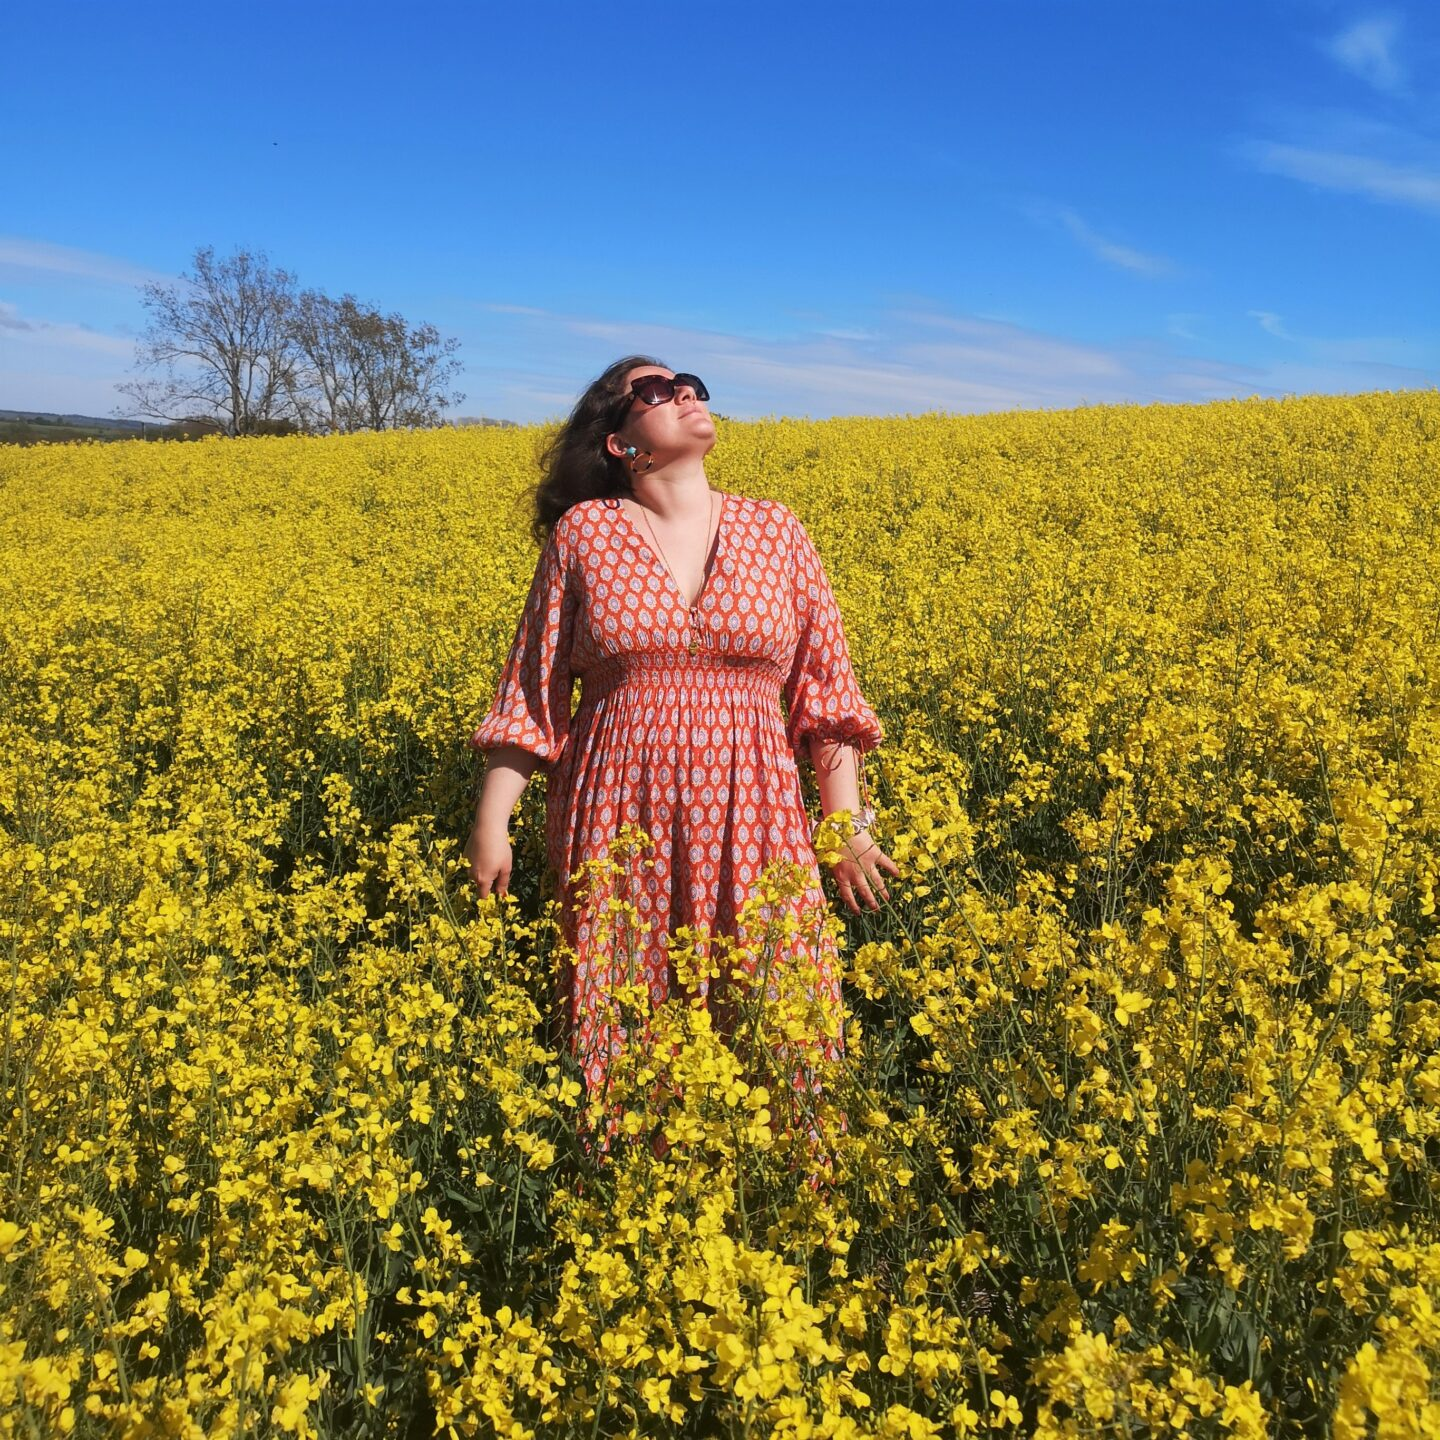 May 2021, Monthly Highlights, Life in Kent, Kent Villages, Family Walk, The Frenchie Mummy, Family Days Out, Kent Villages, Rapeseed Field